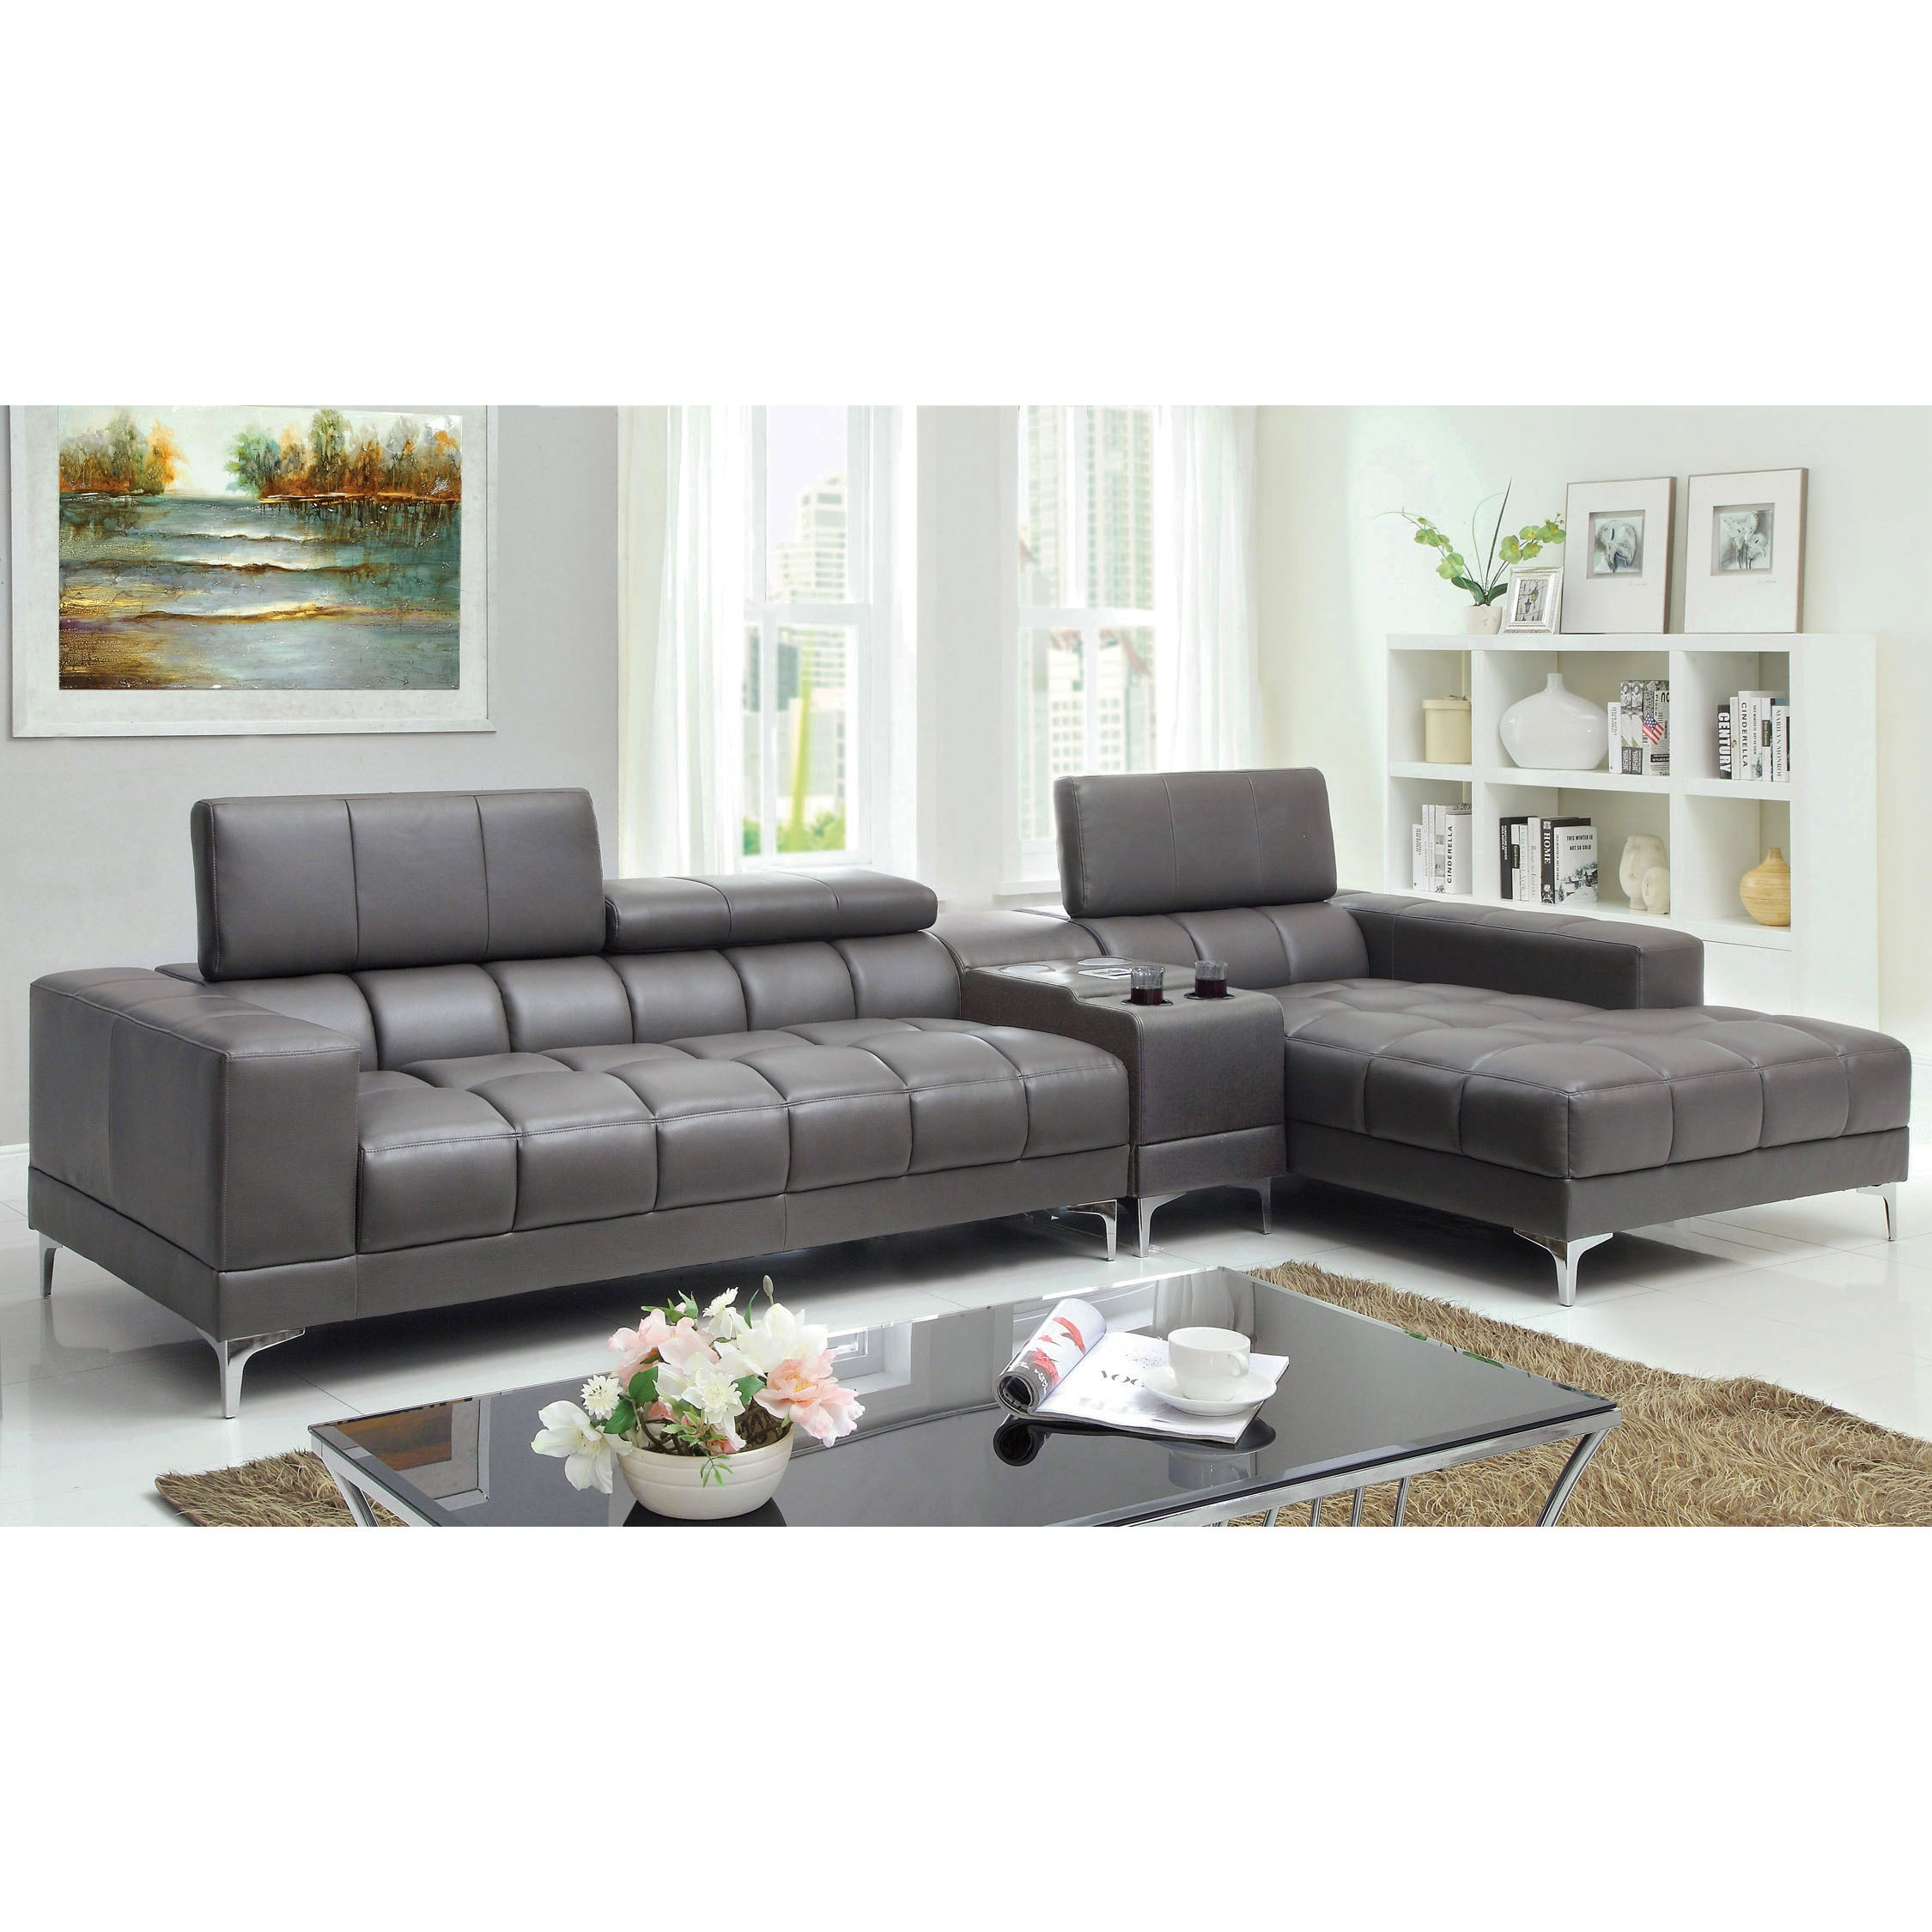 Furniture of america bourlette grey leather 2 piece sectional